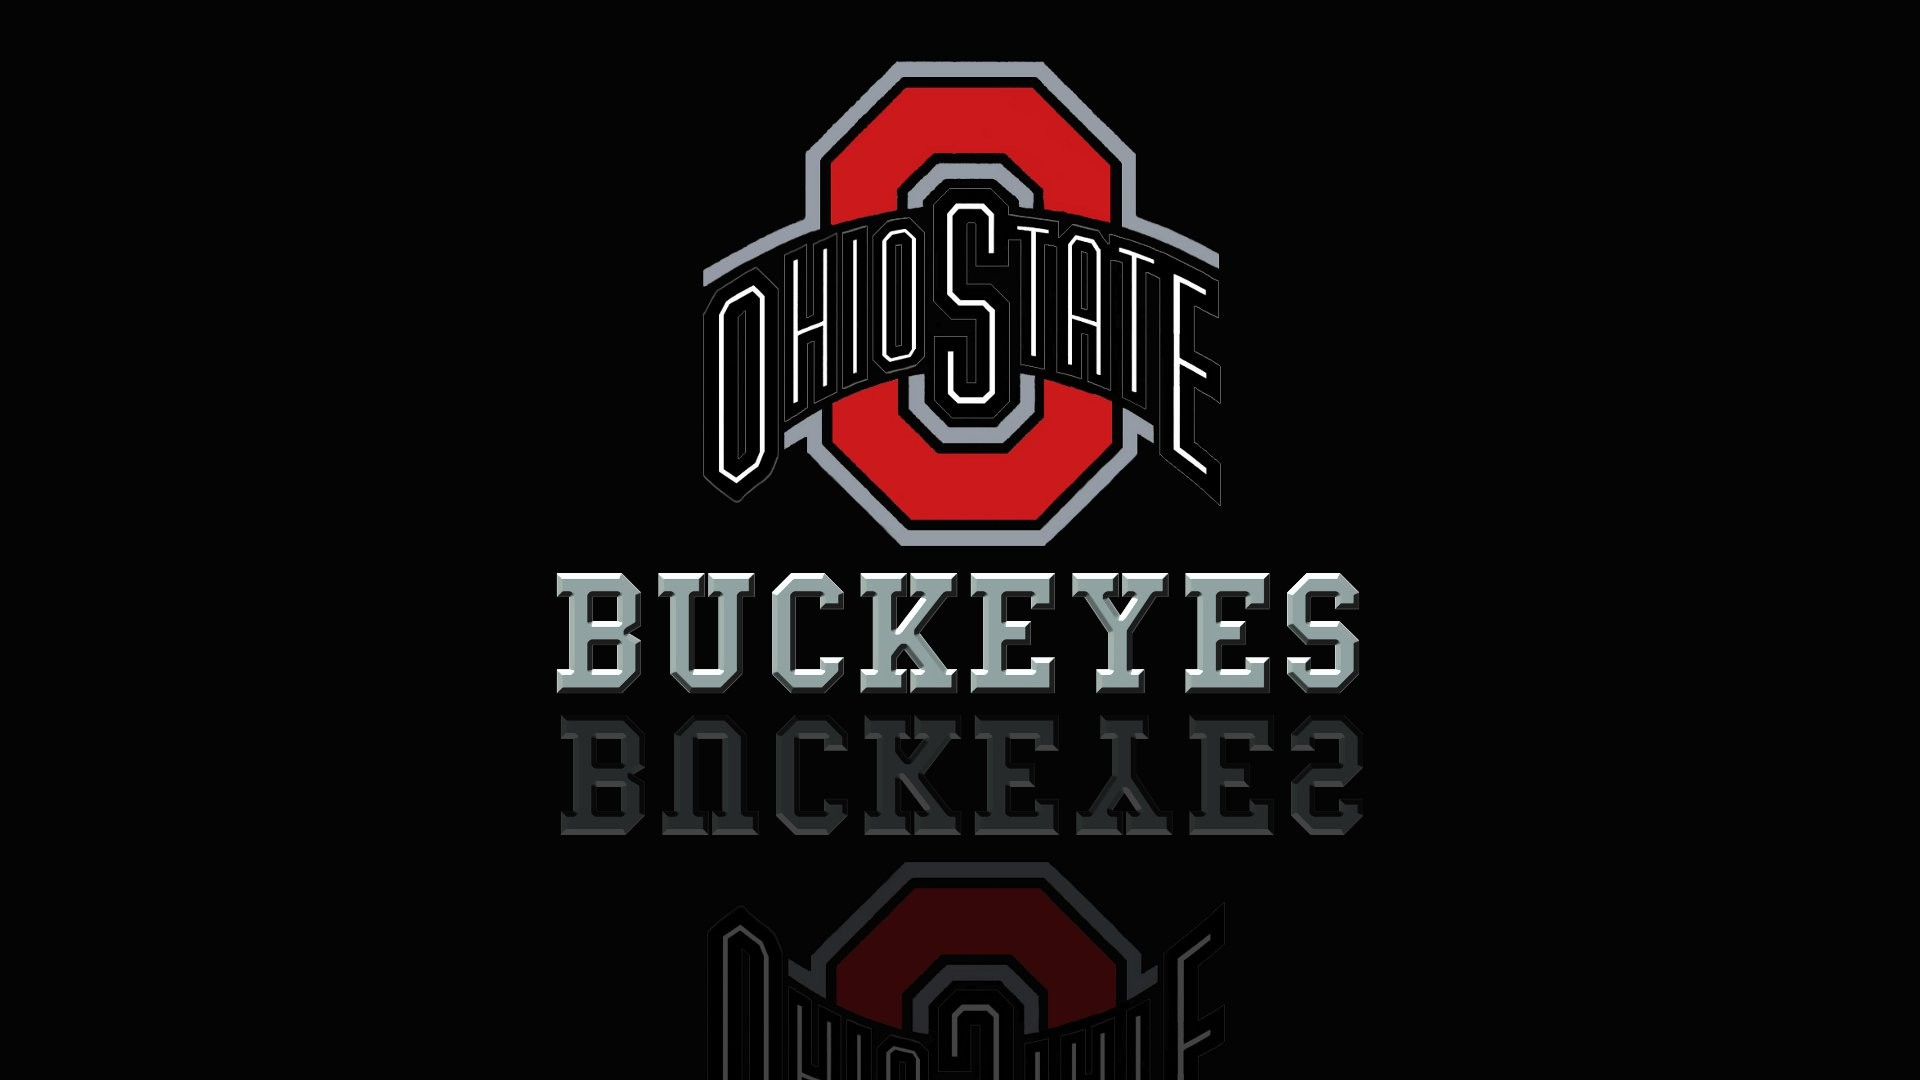 1920x1080 Ohio State Football images OSU Wallpaper 150 HD wallpaper and .